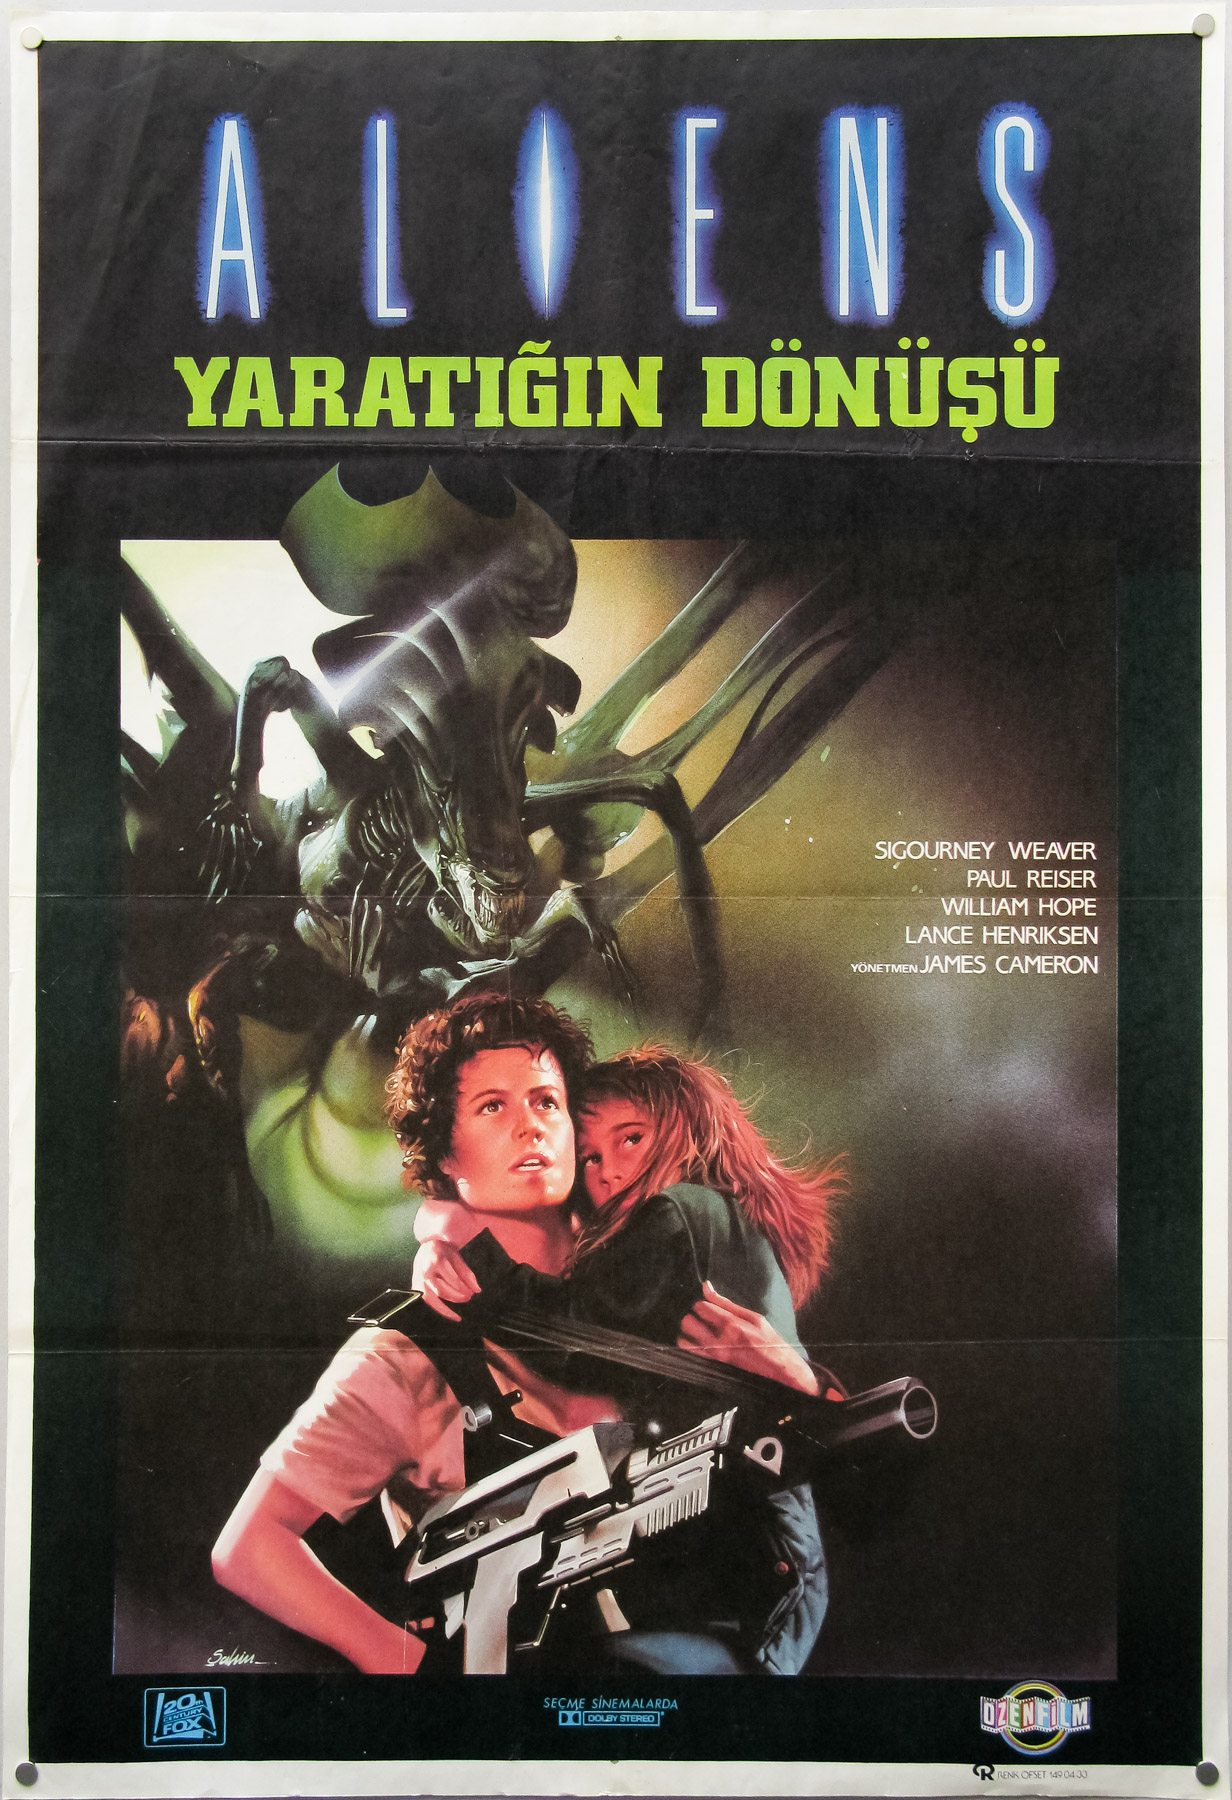 外星人s Turkish poster